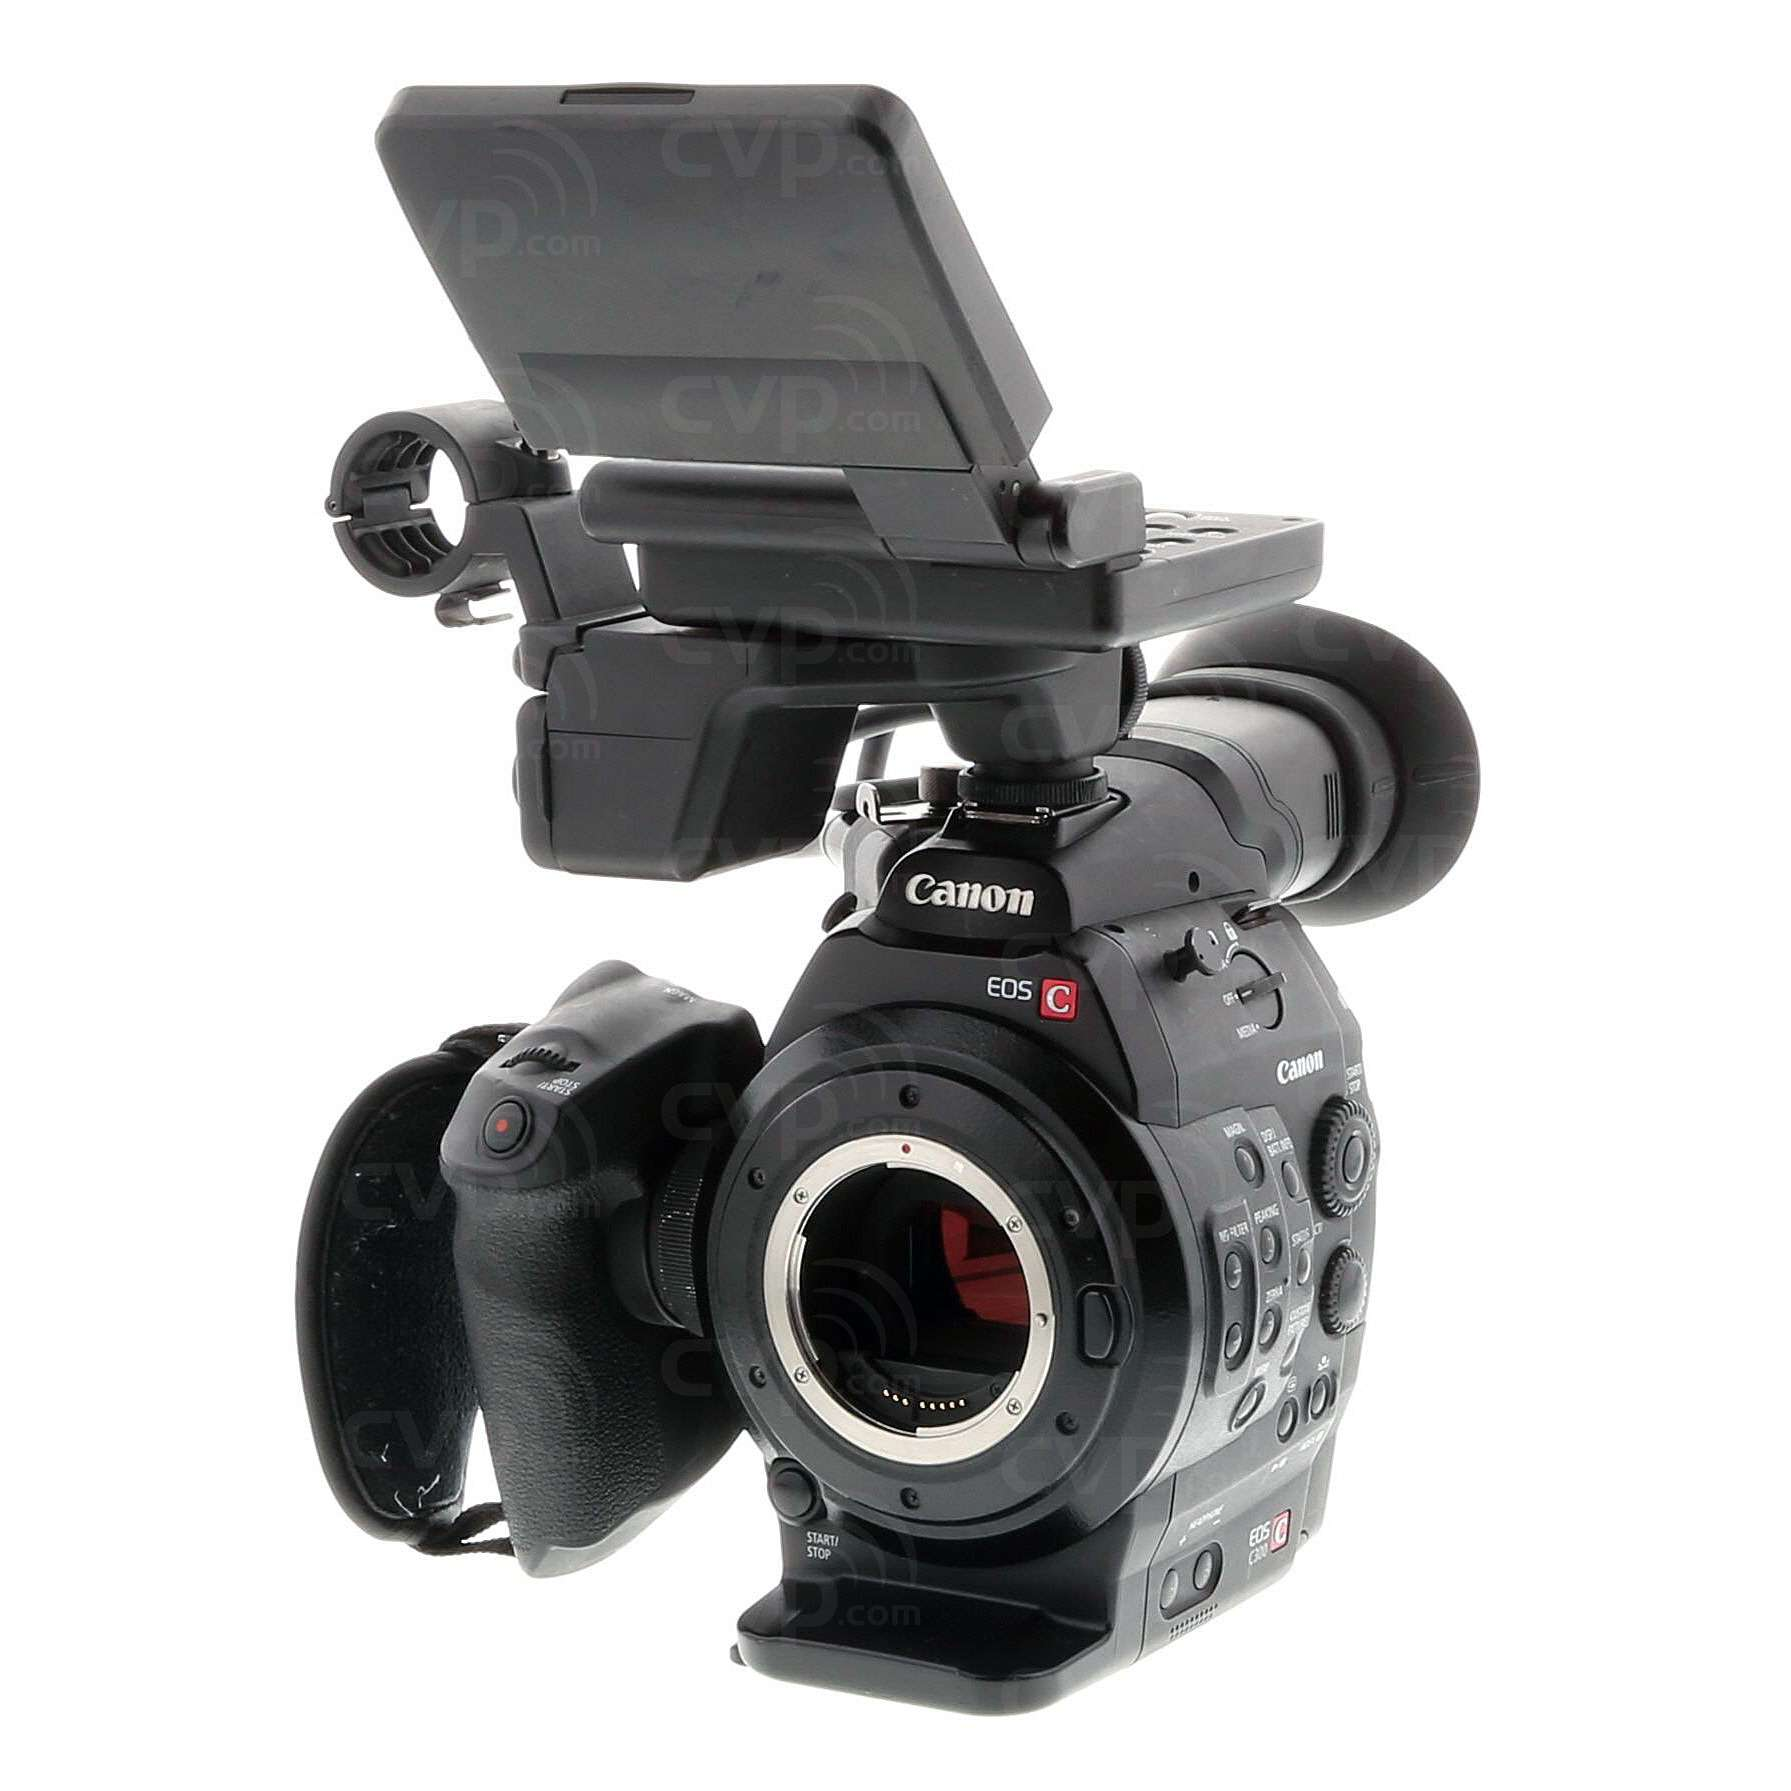 USED Canon Cinema EOS C300 EF (C-300, 300C, EOS) Super 35mm Digital Cinematography Camcorder with EF Lens Mount